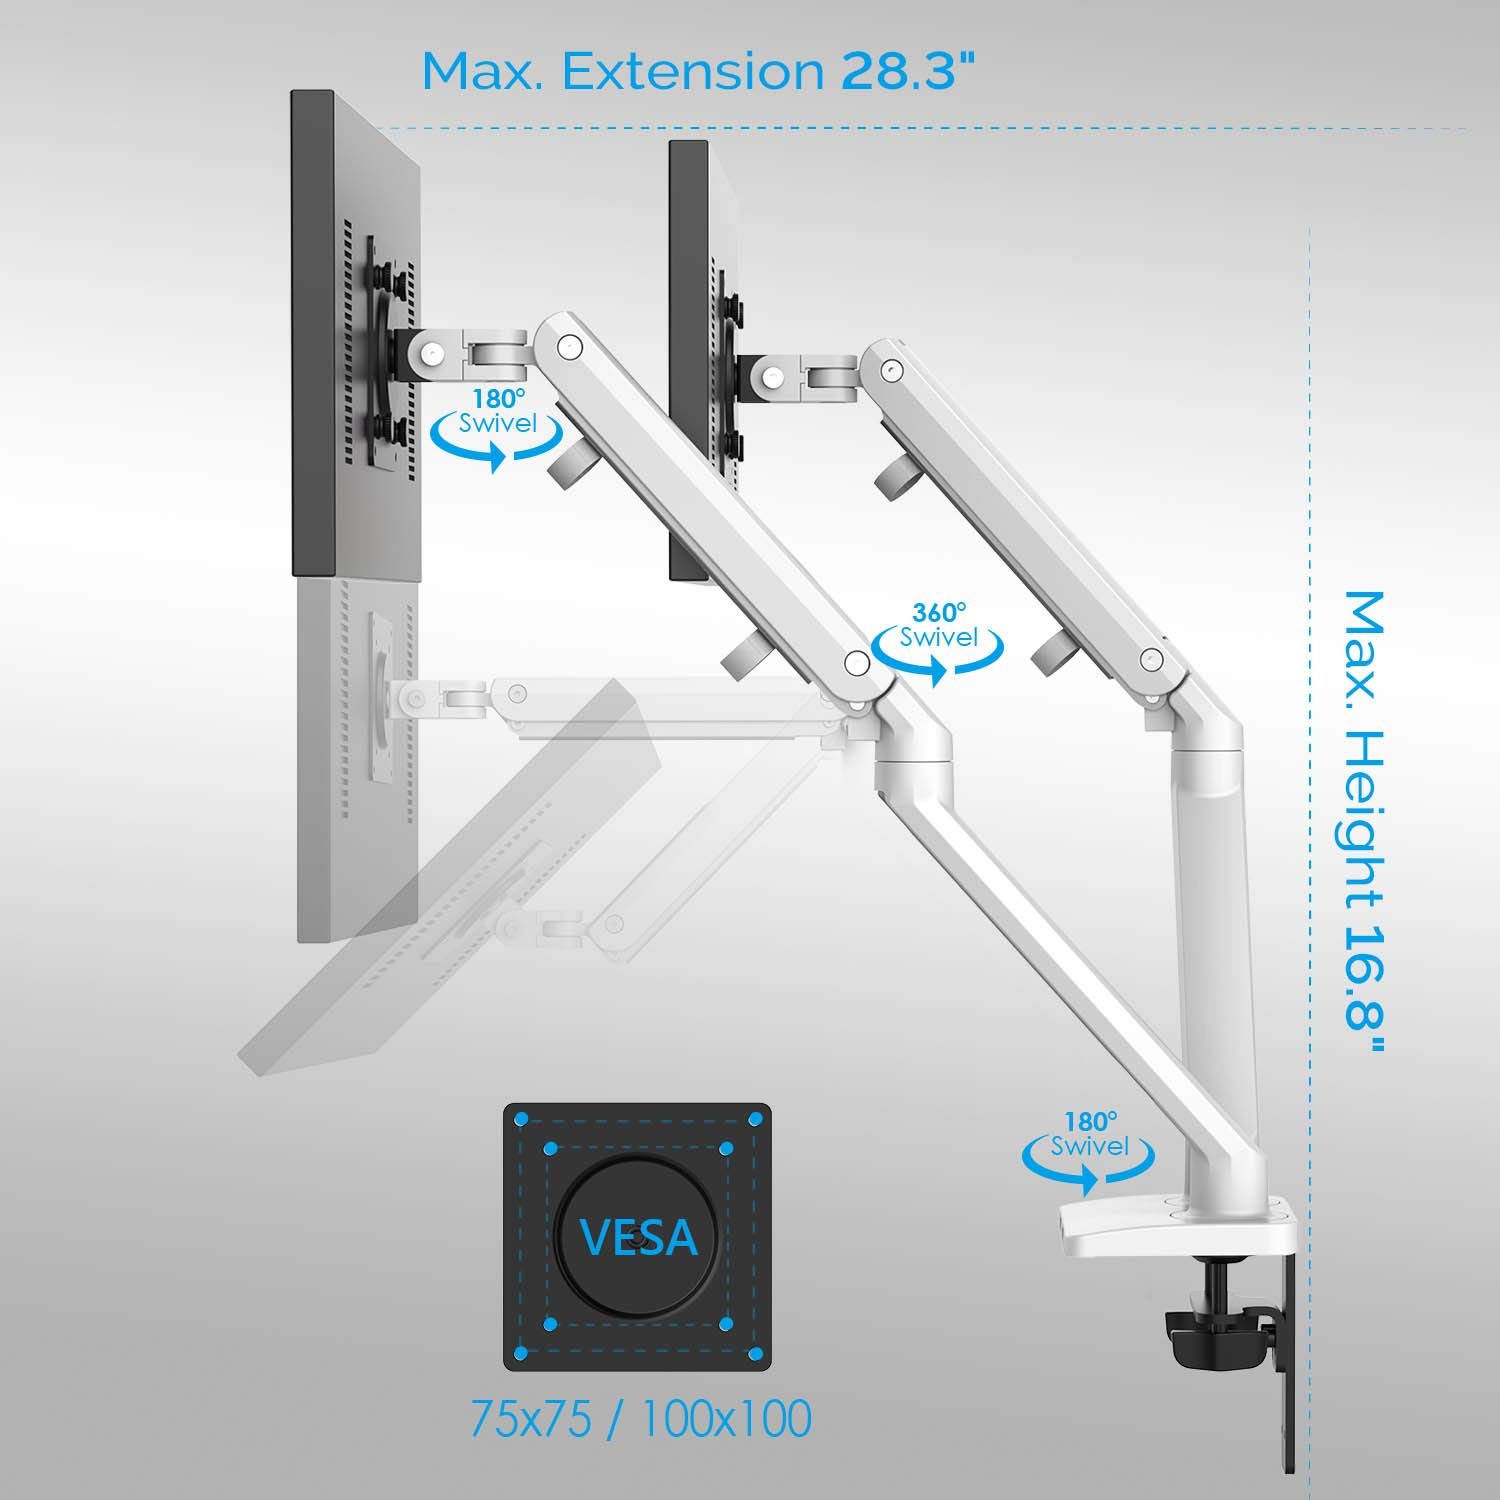 Bemorergo Dual LED LCD Monitor Desk Mount Stand- Aluminum Gas Spring Arm Height Adjustable VESA Bracket 2 in 1 Heavy Duty Fully, fits 2 /Two Screens up to 17 to 32 inches